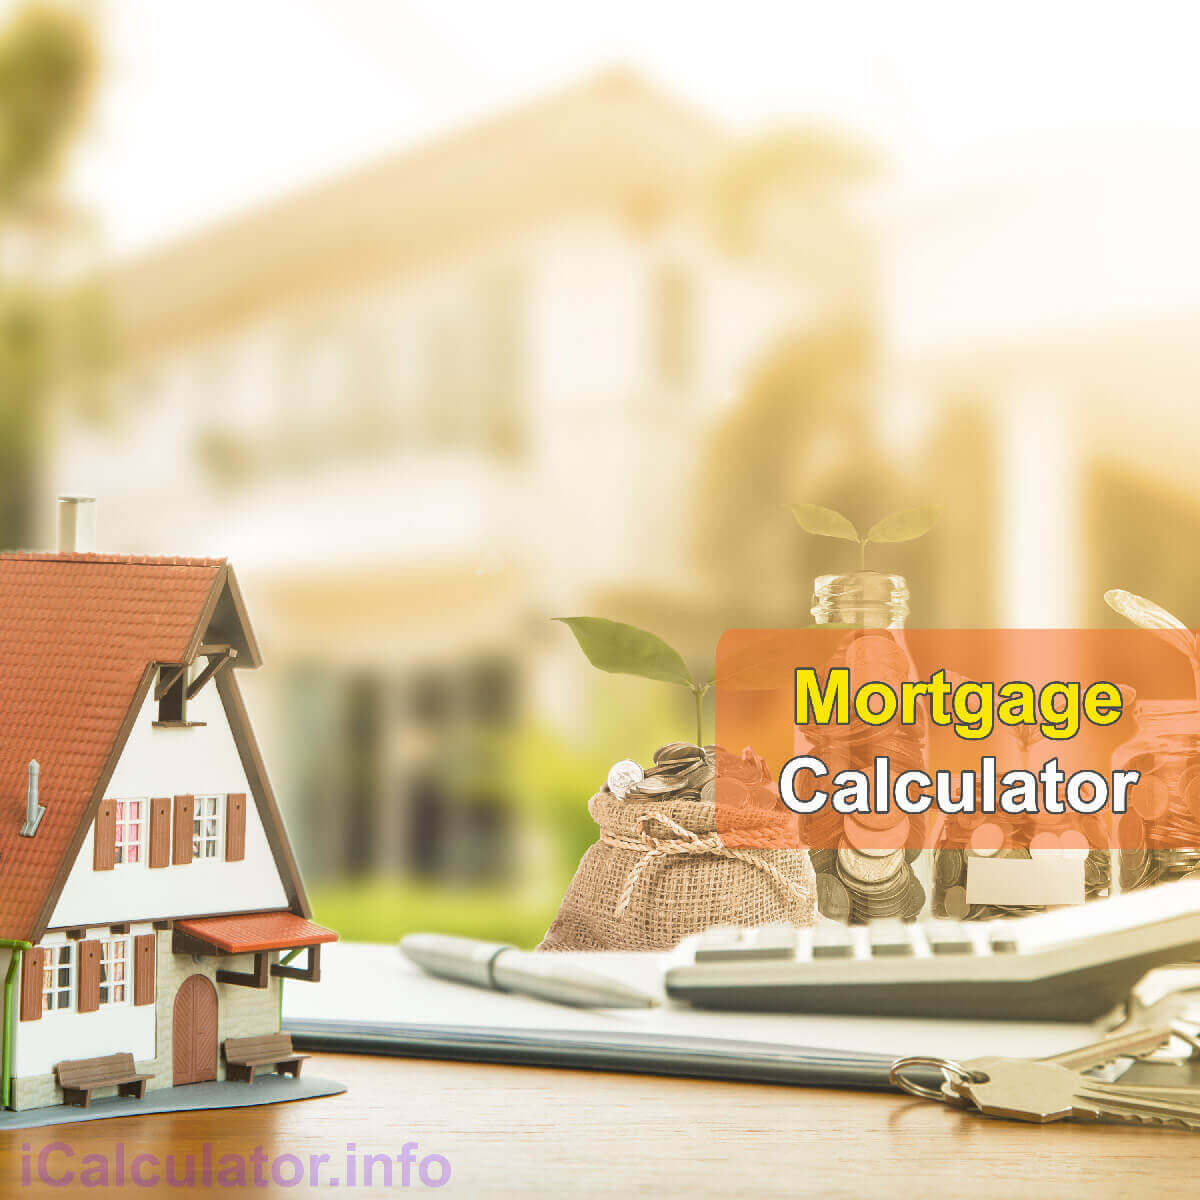 Mortgage Calculator. This image shows a beautiful home for a first time buyer, a notepad and a calculator being used to calculate the monthly repayment amount on a £2,500.00 mortgage with a 4.7% mortgage interest rate. Alternatively, people can calculate their monthly mortgage repayments on £2,500.00 at 4.7% using the mortgage calculator by iCalculator Finance Tax Calculator